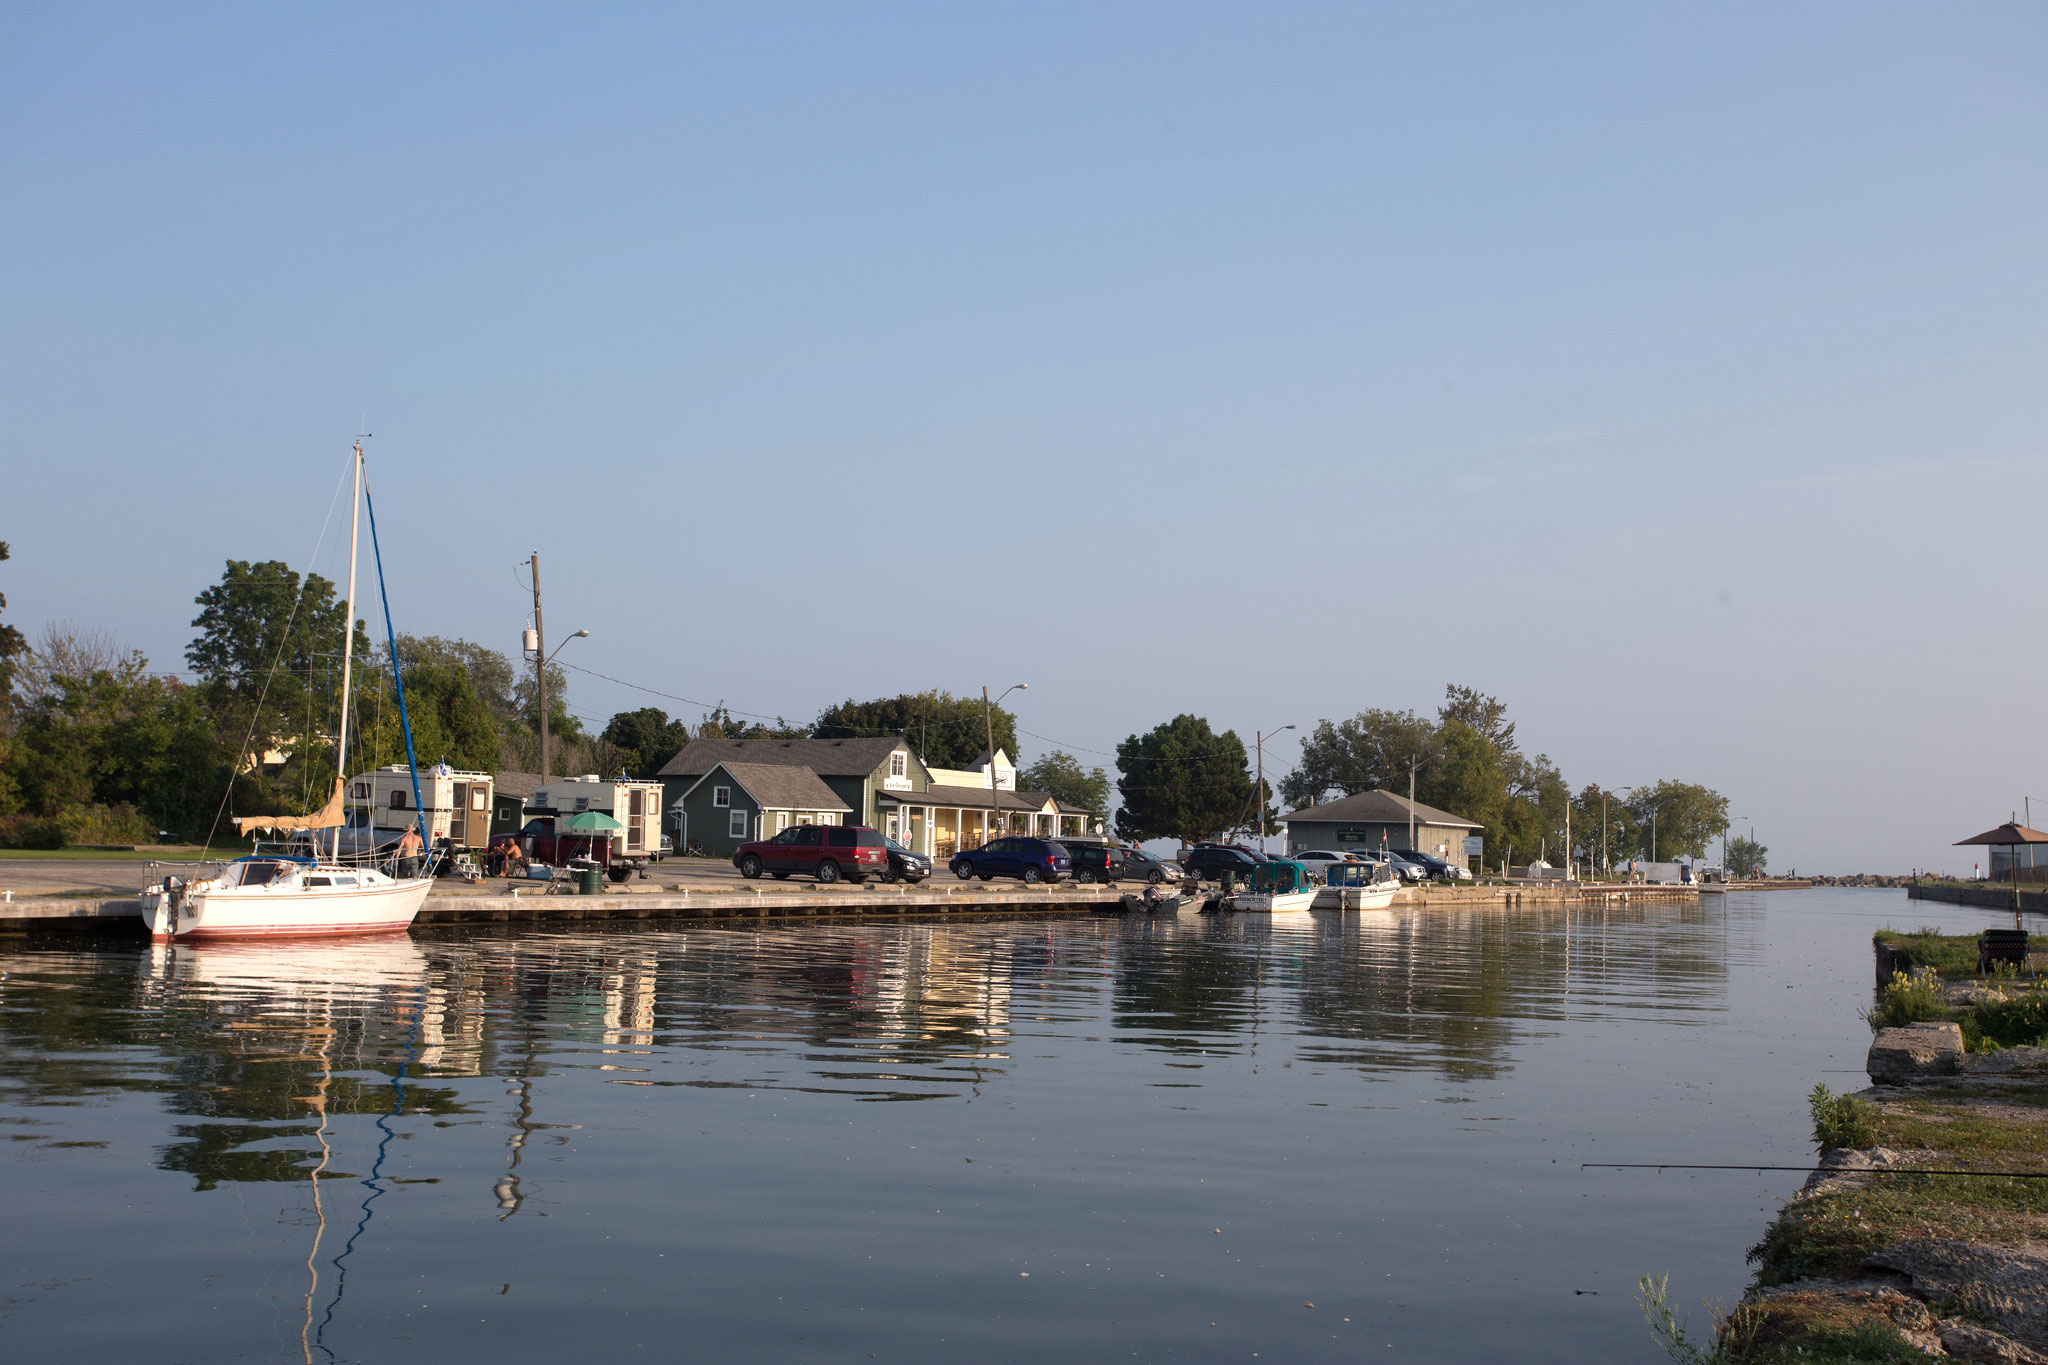 A fishing site in the Port Hope's Cameco area. (Photo by Dylan Neild)